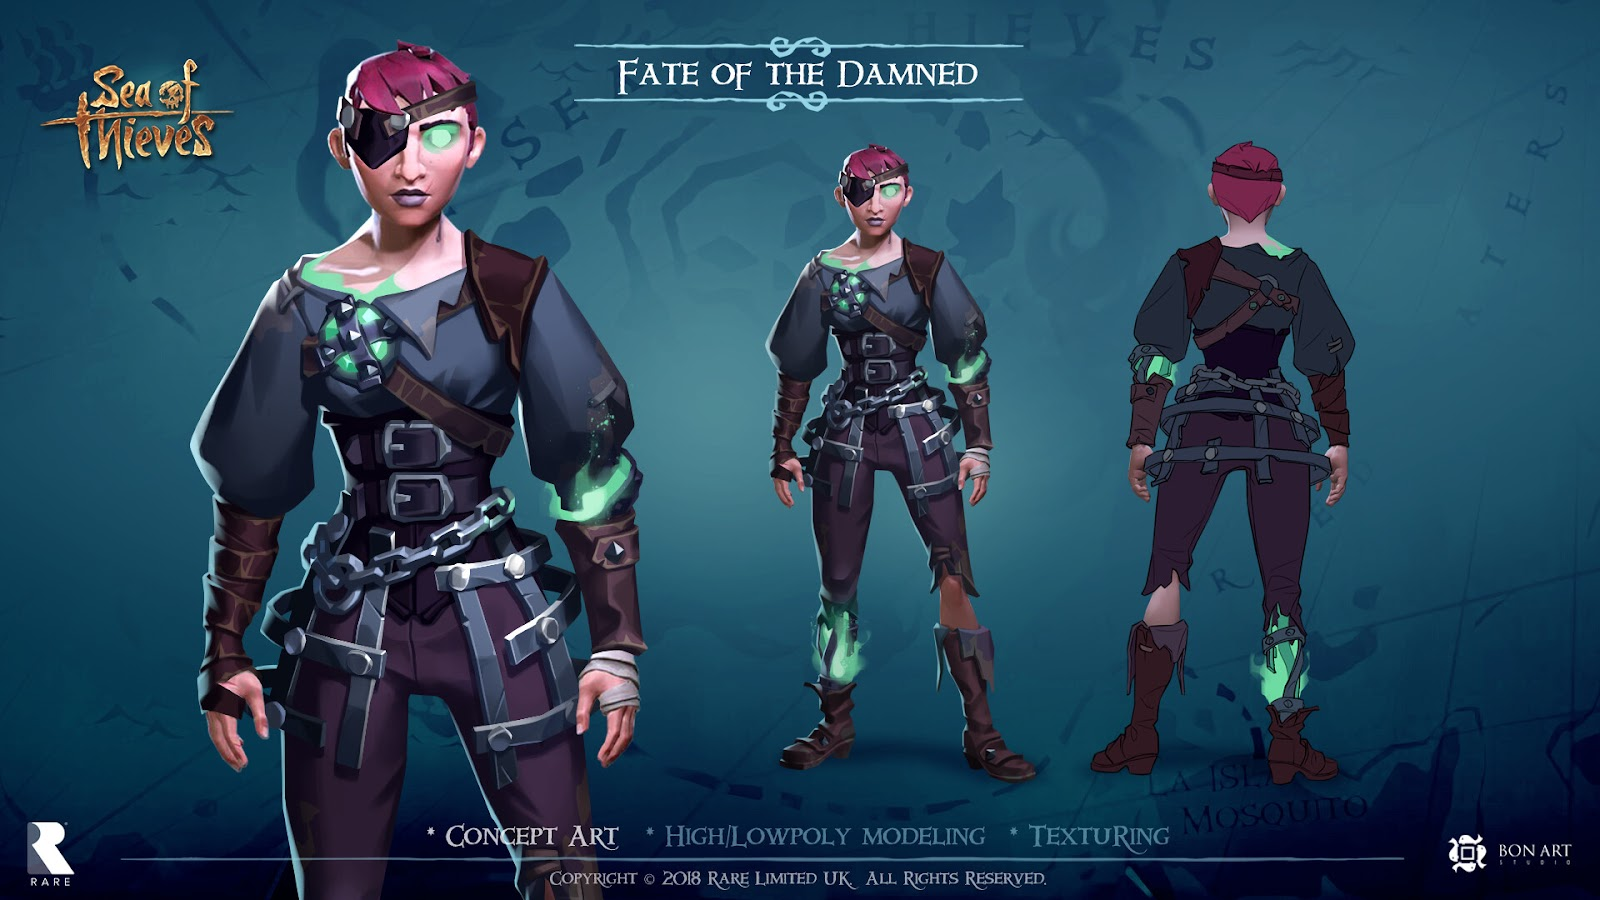 Fate of the damned skin - Sea Of Thieves